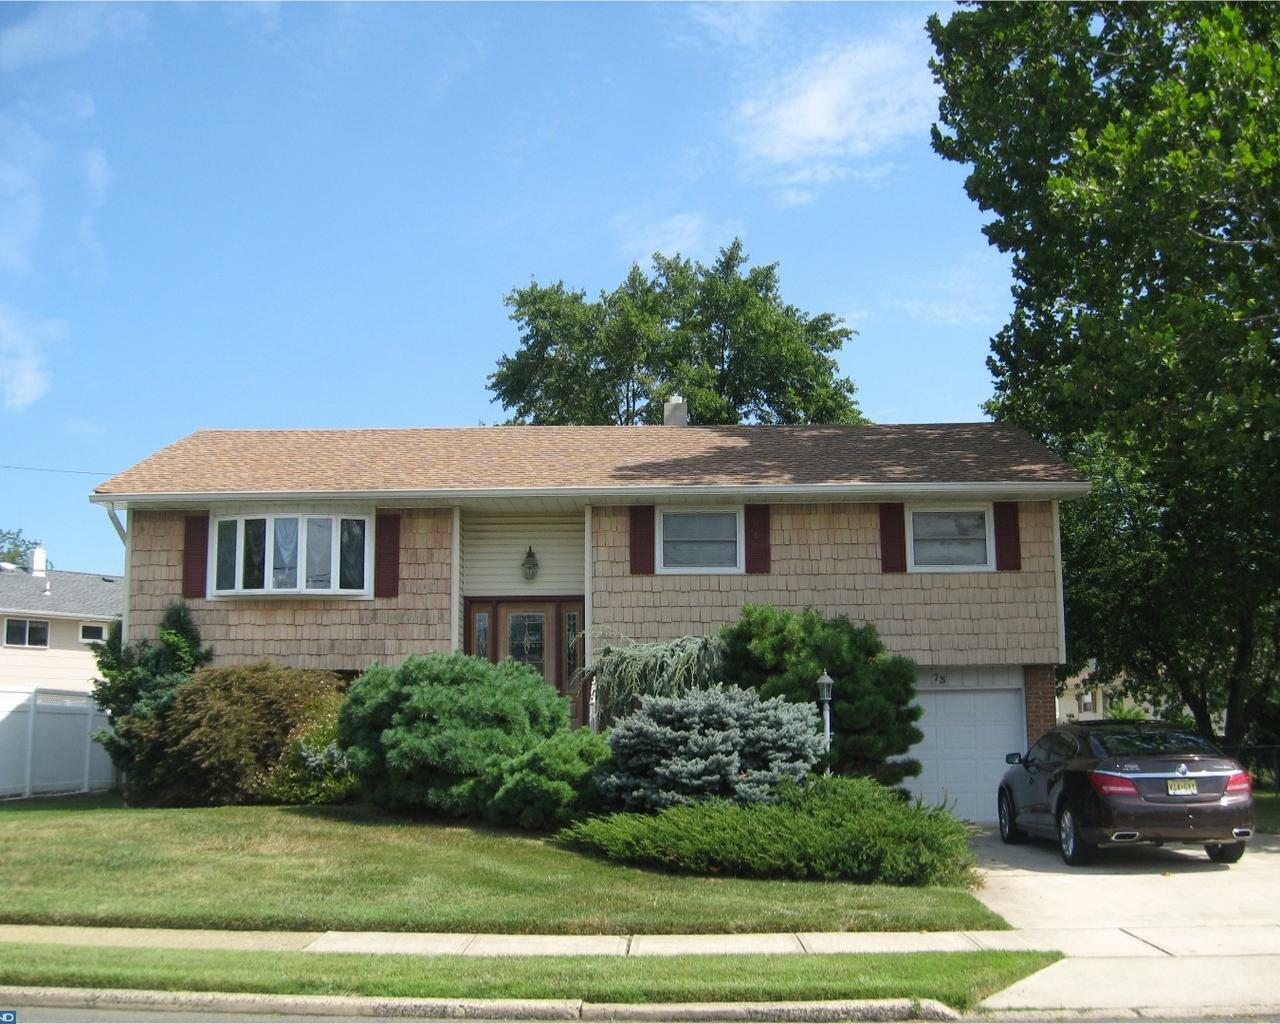 73 Albemarle Rd, Hamilton Square, NJ - USA (photo 1)